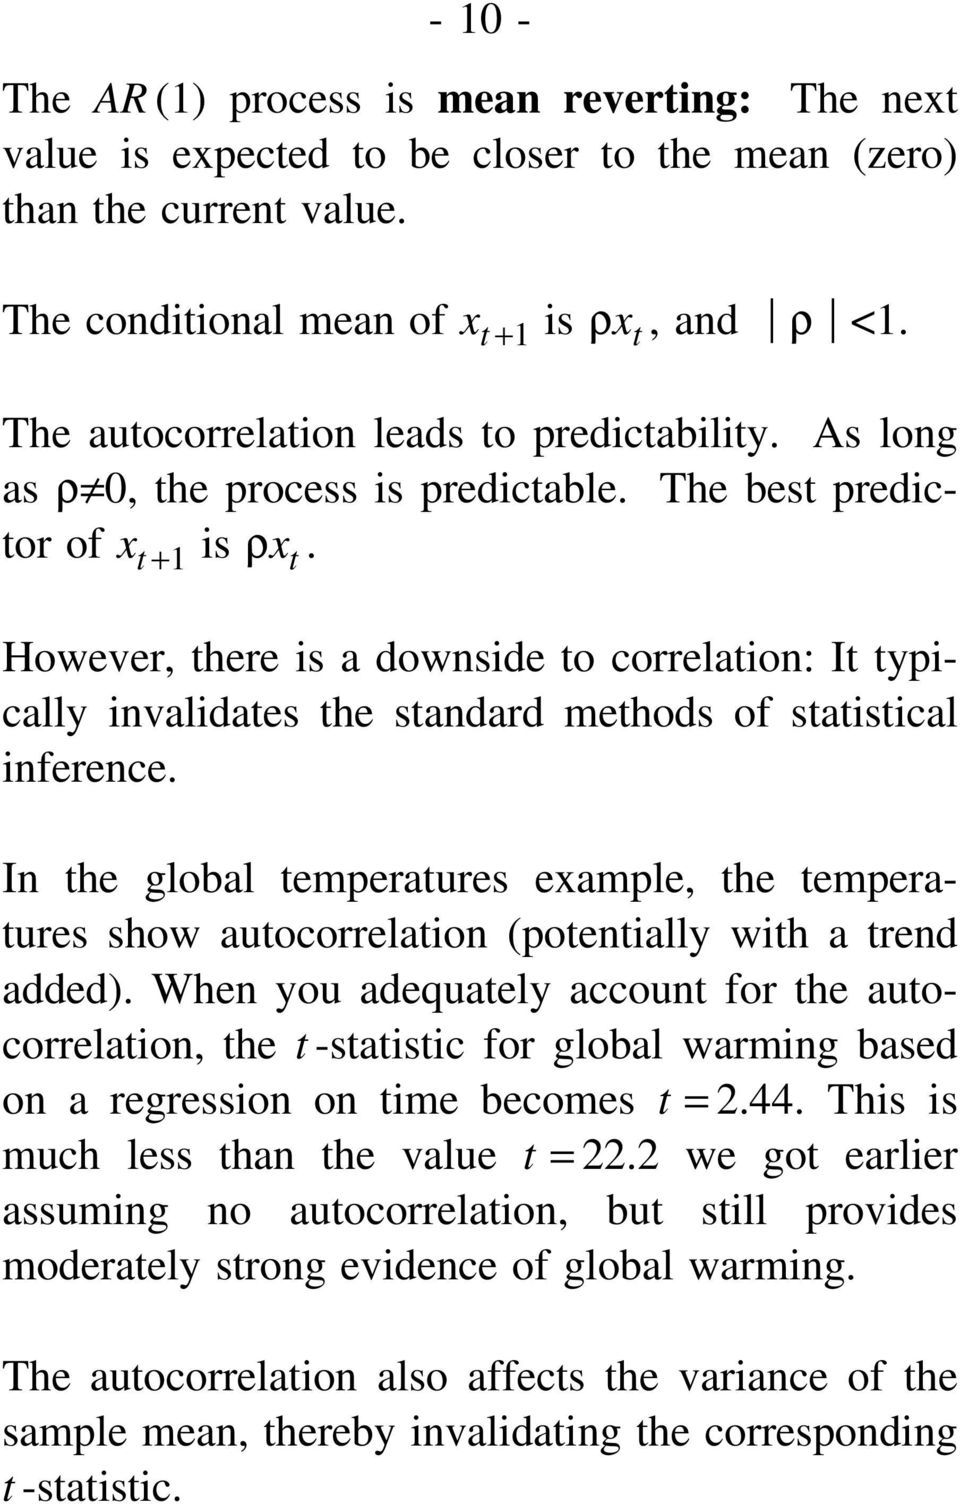 However, there is a downside to correlation: It typically invalidates the standard methods of statistical inference.